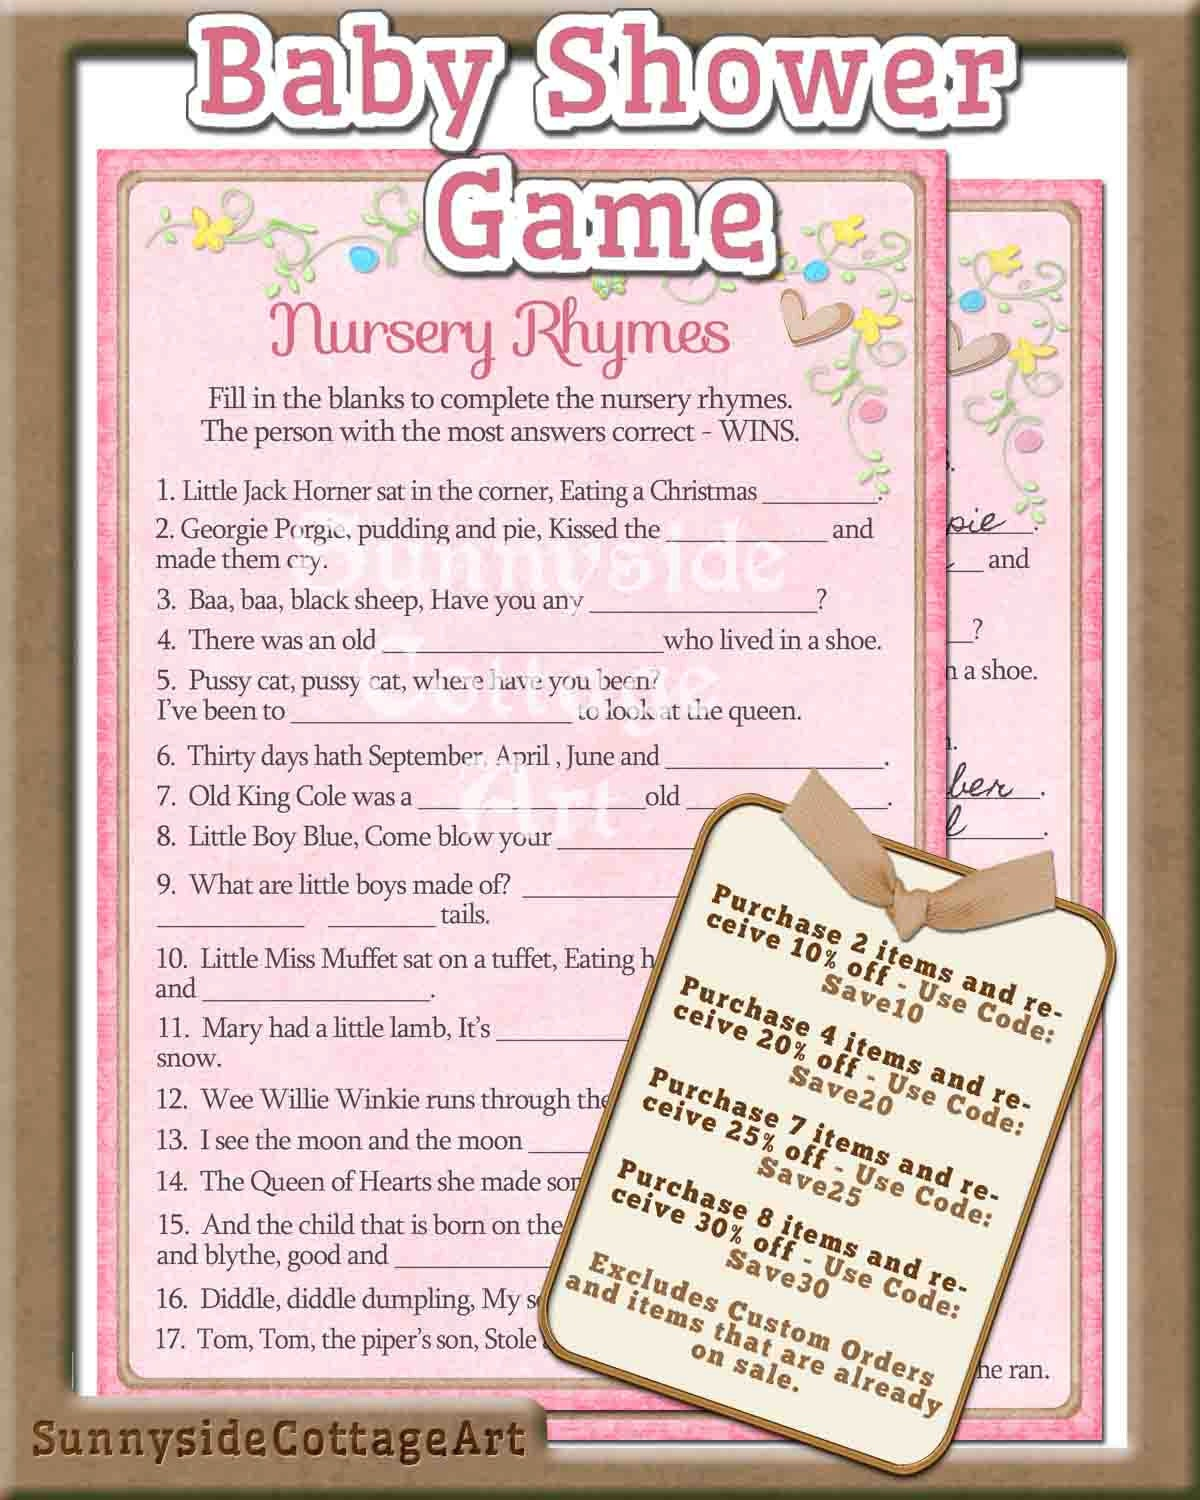 nursery rhyme baby shower game printable by sunnysidecottageart